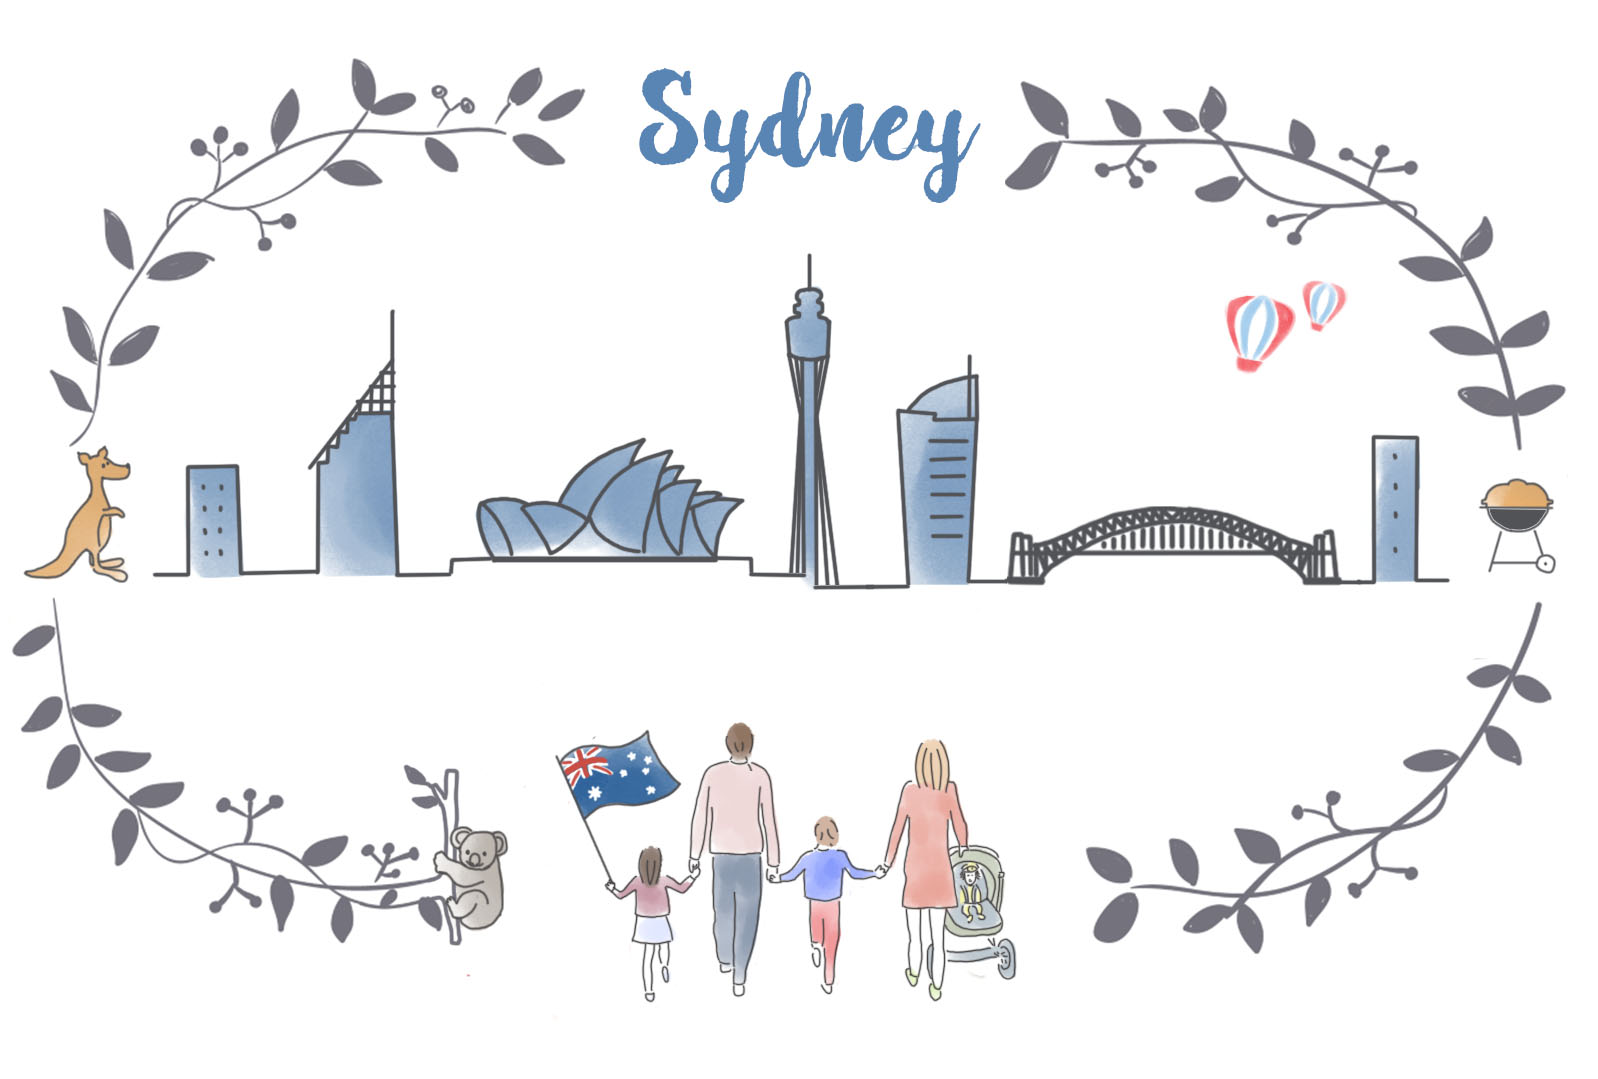 Cover art for Sydney travel guide with skyline